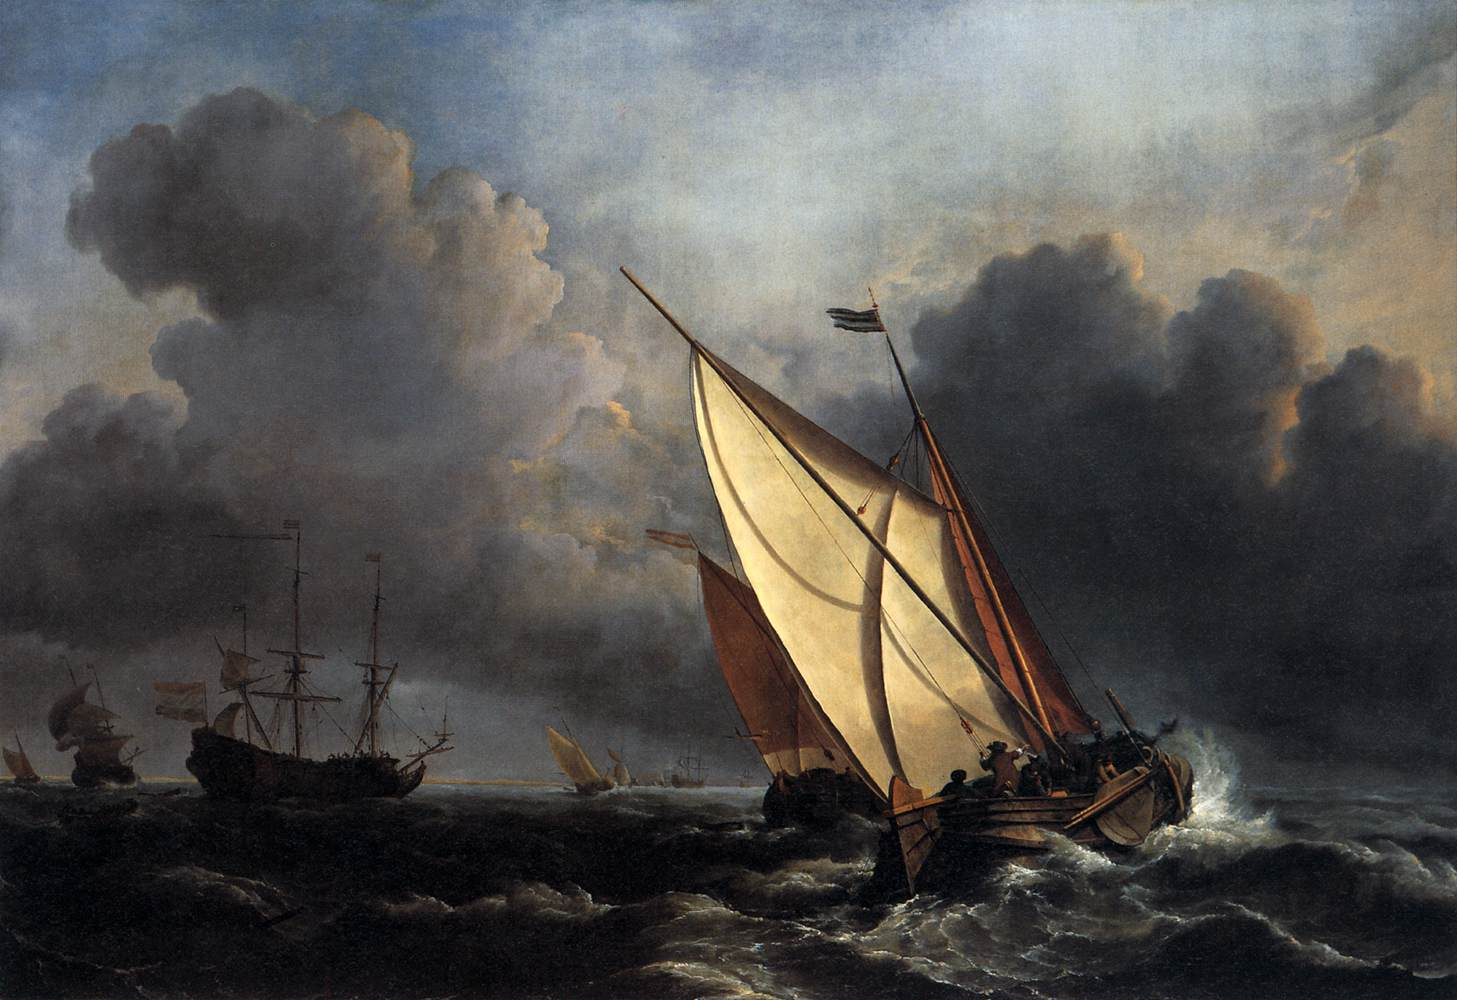 Ship In Storm At Sea Images & Pictures - Becuo Ship Painting Storm